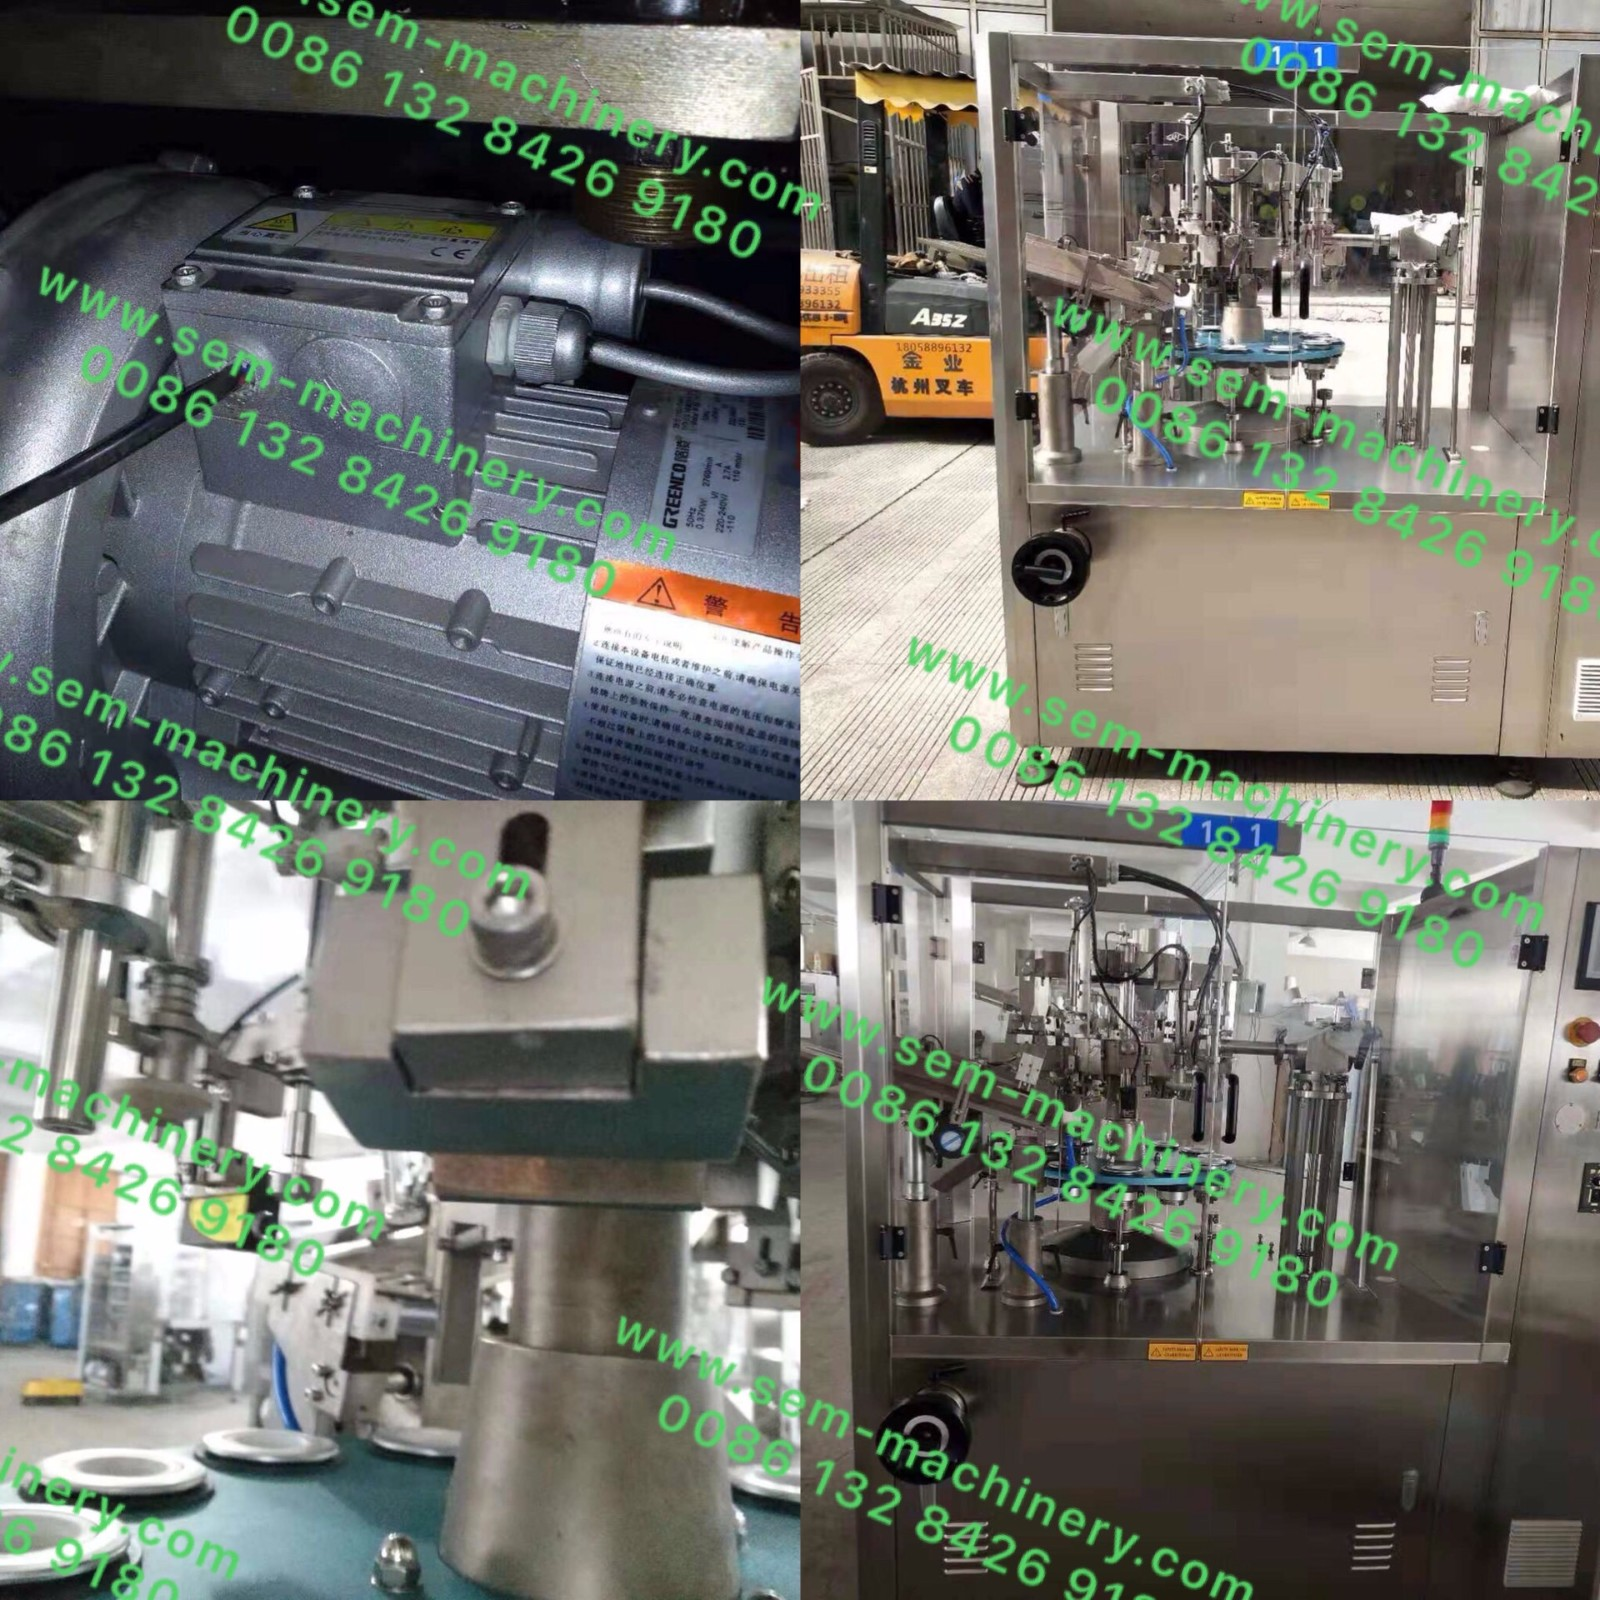 Liquid filling and carton box packing line machines delivered